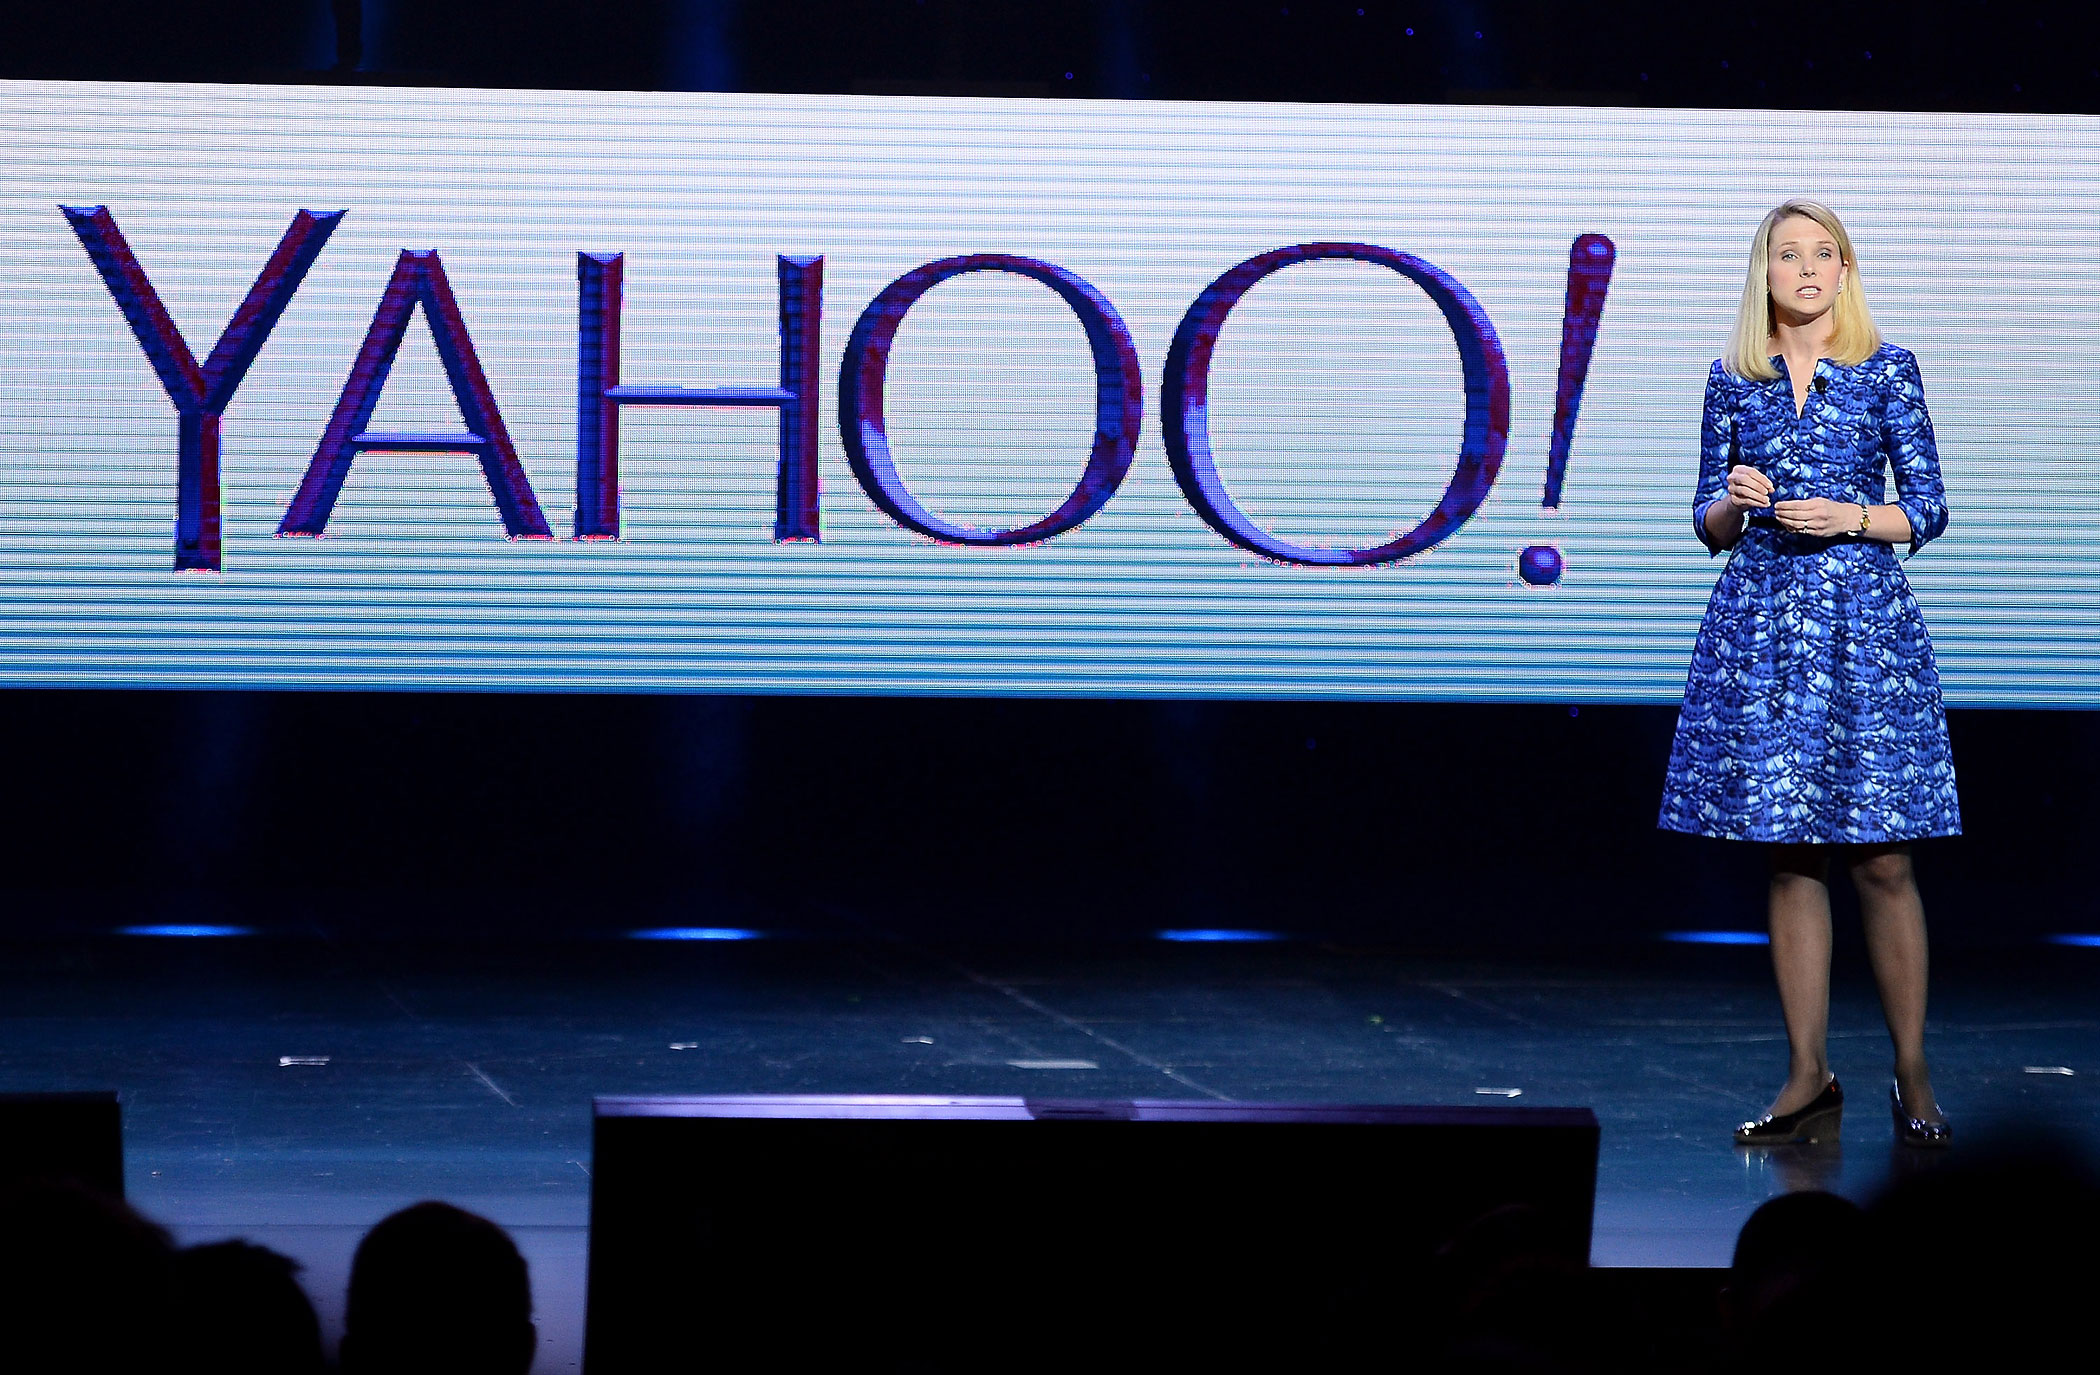 Yahoo! President and CEO Marissa Mayer delivers a keynote address at the 2014 International CES on Jan. 7, 2014 in Las Vegas, NV.